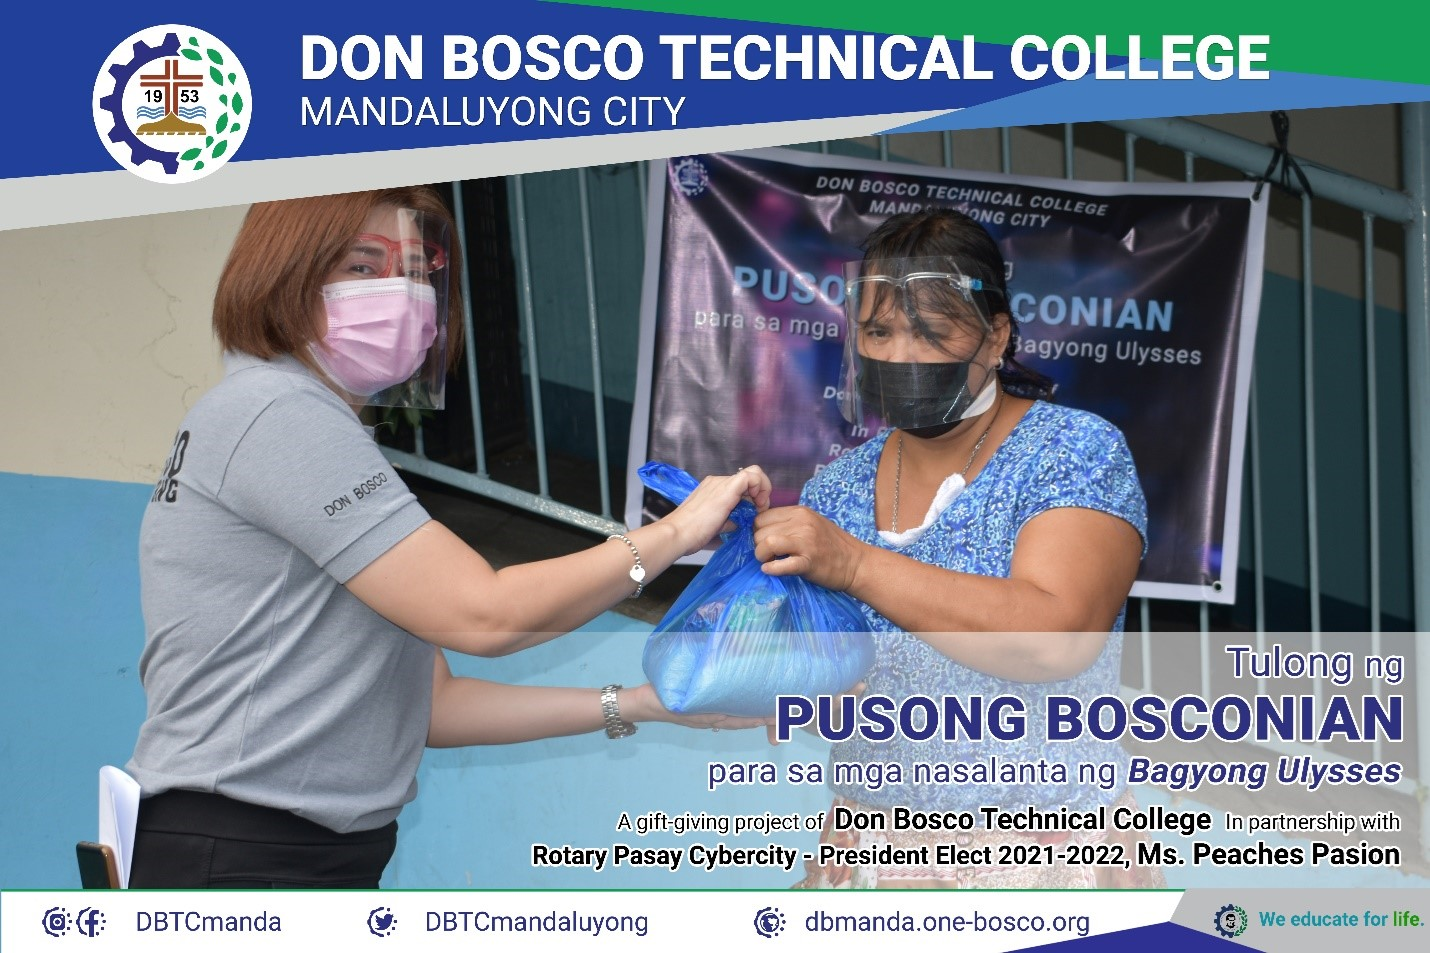 Don Bosco Technical College Mandaluyong Assists Victims of Typhoon Ulysses, Mandaluyong, Philippines